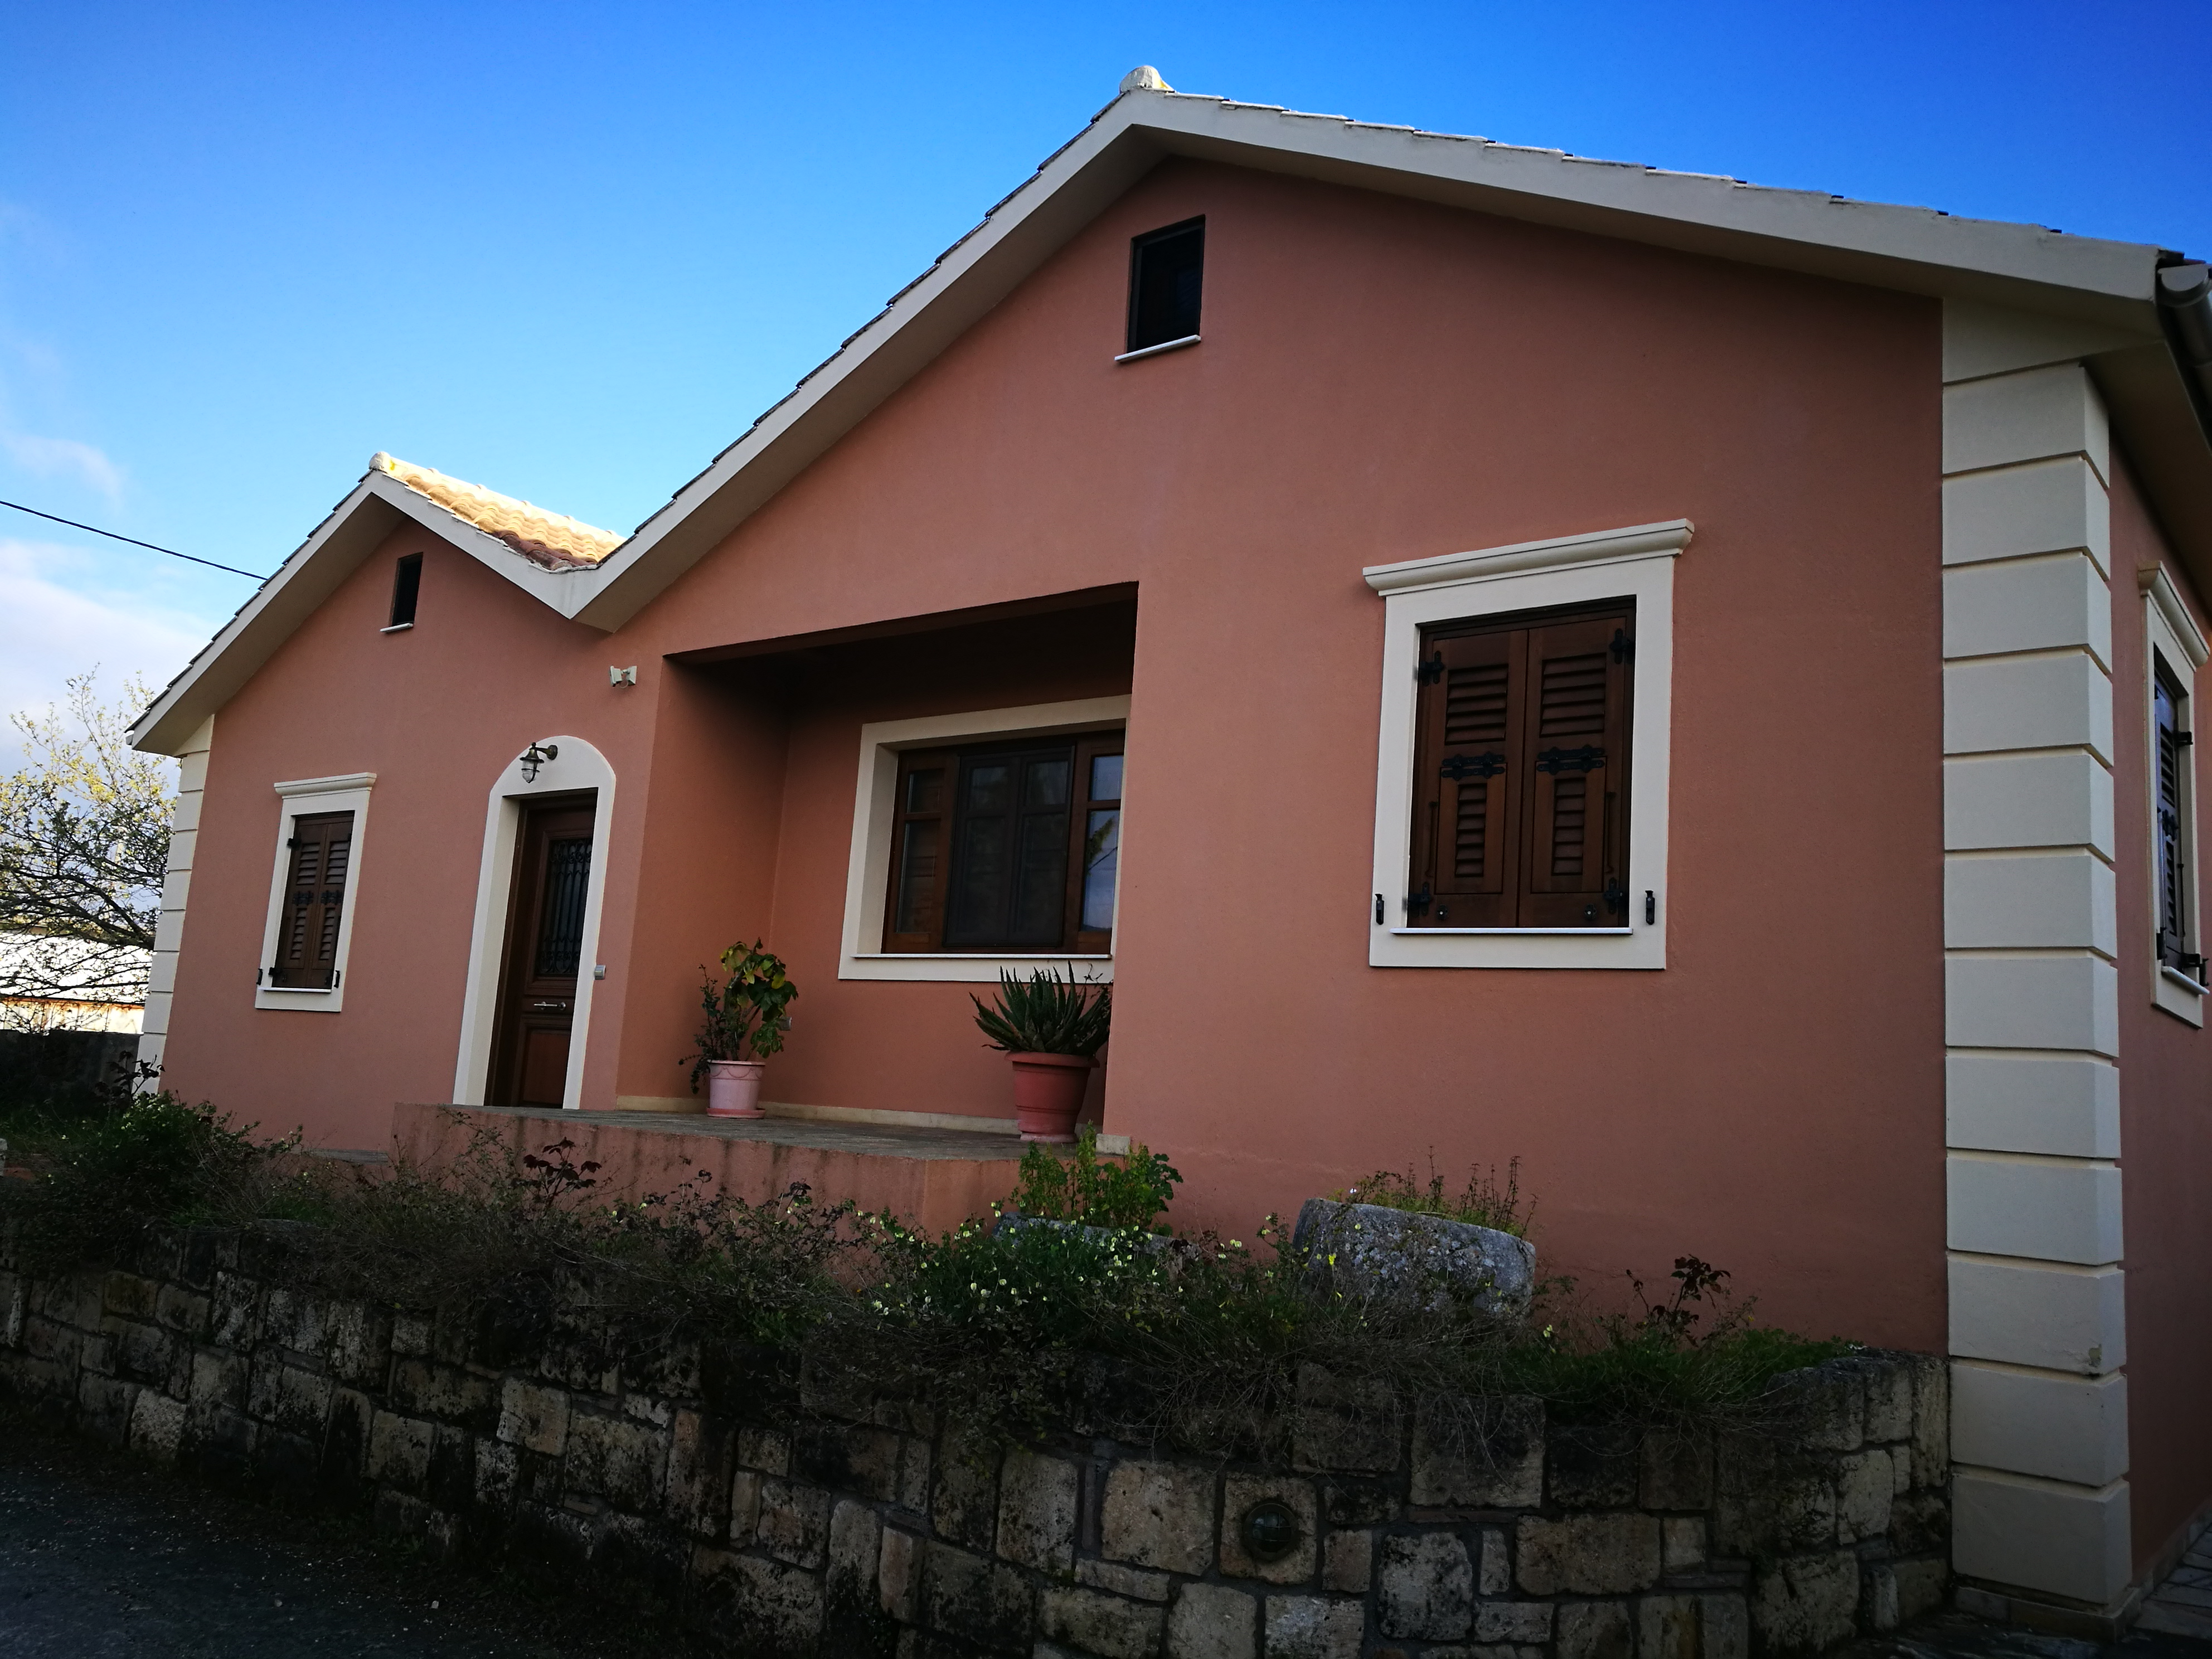 Eco house for sale in keramies village sold for Environmentally friendly homes for sale